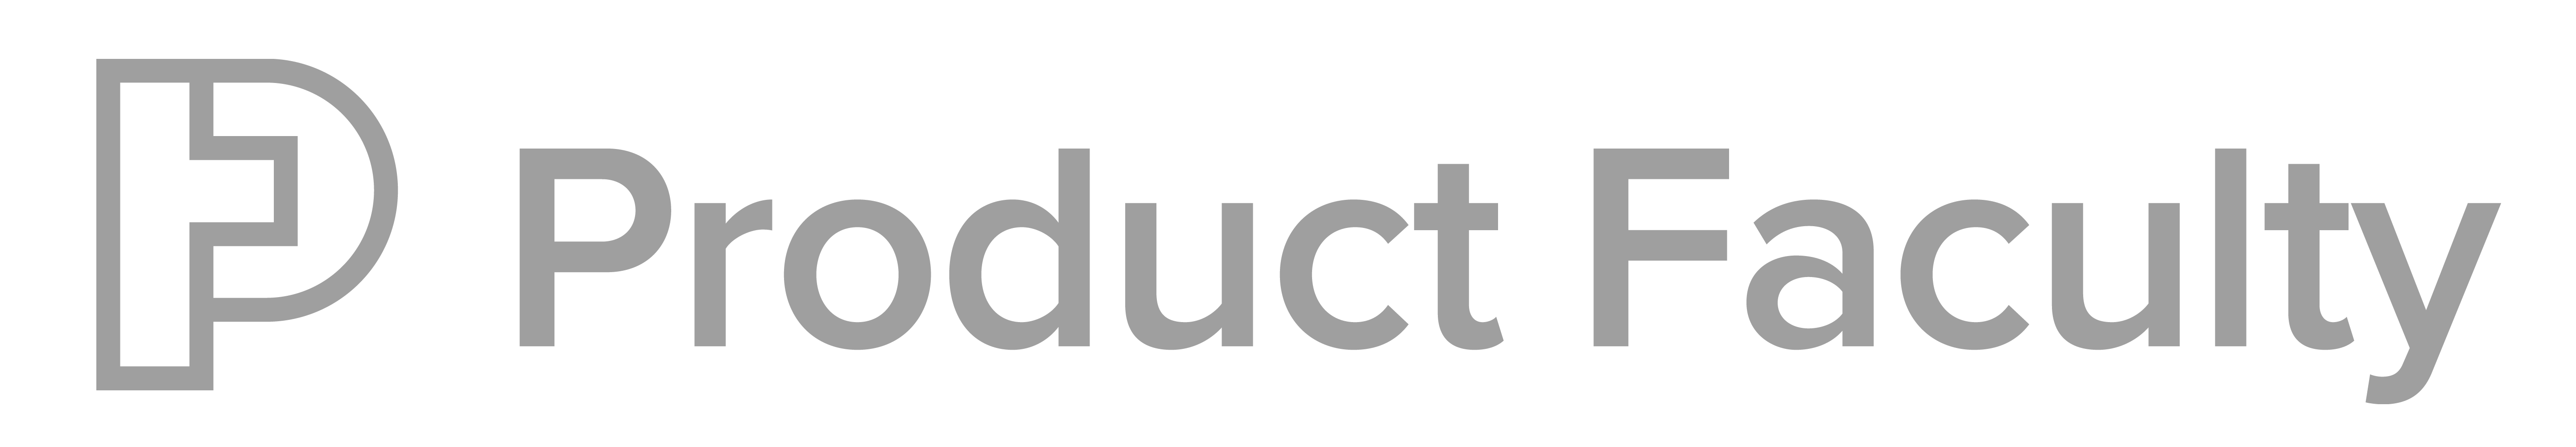 productfaculty